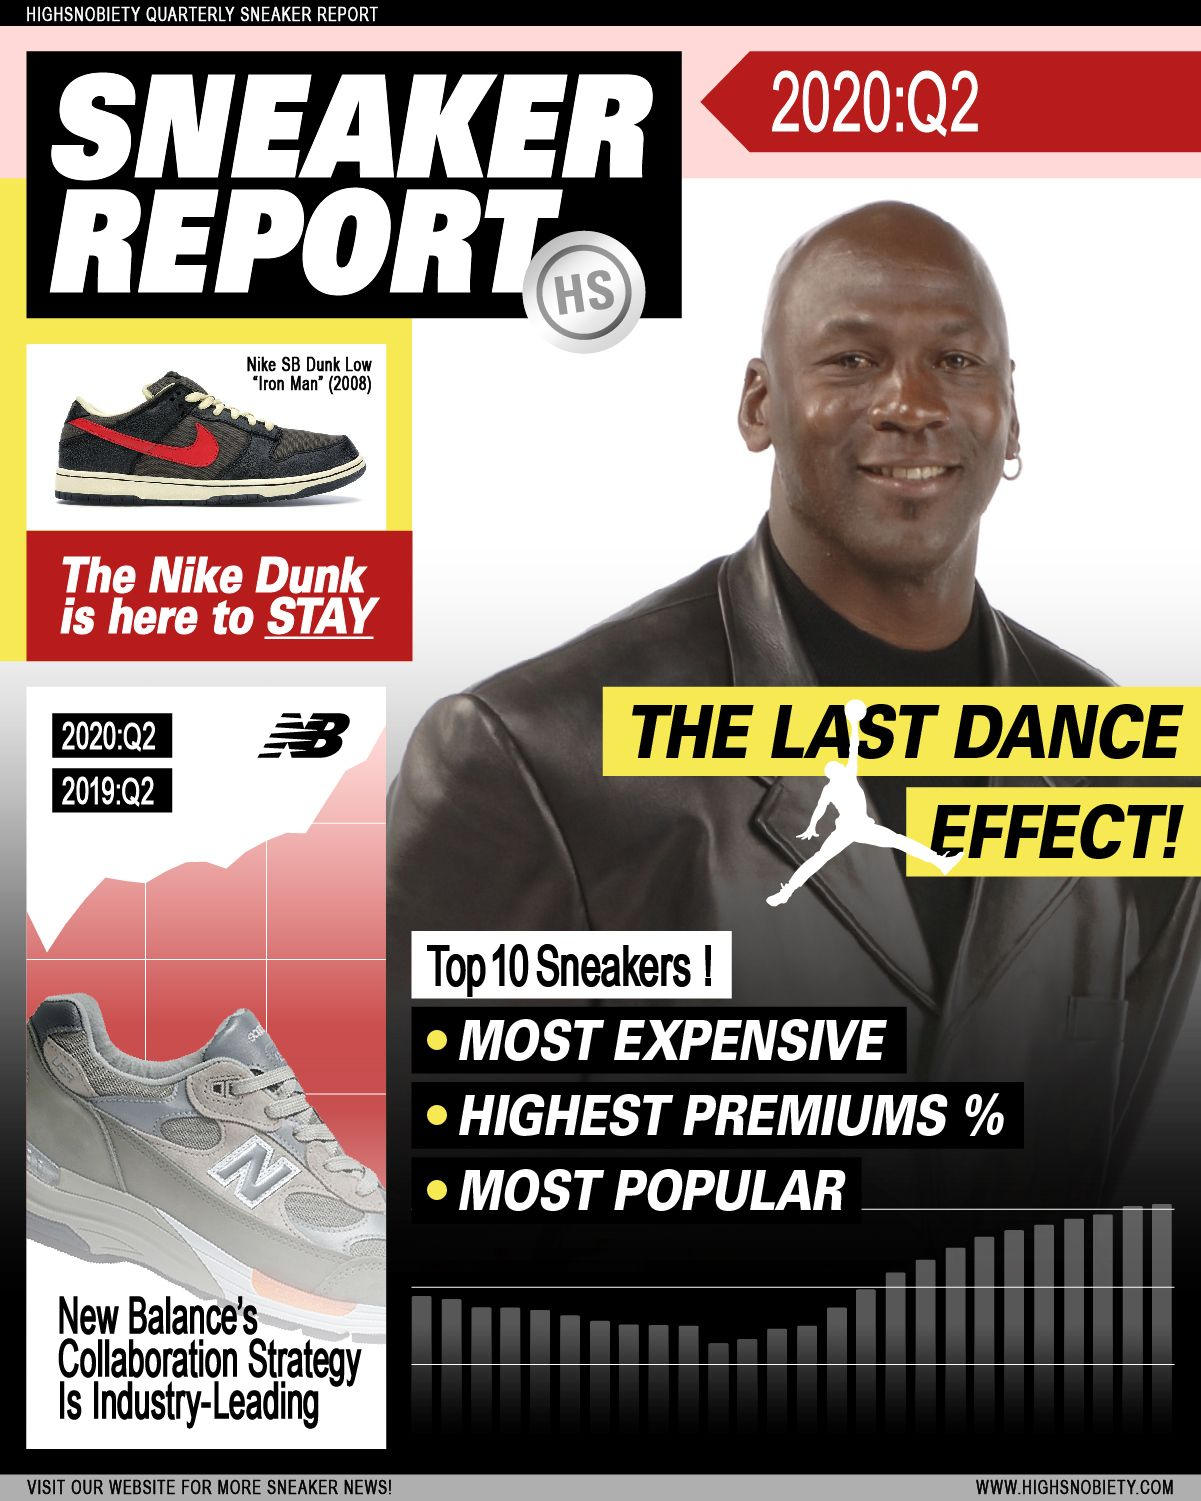 New Balance's Authenticity & Michael Jordan's Legend Defined Sneaker Storytelling This Quarter 23